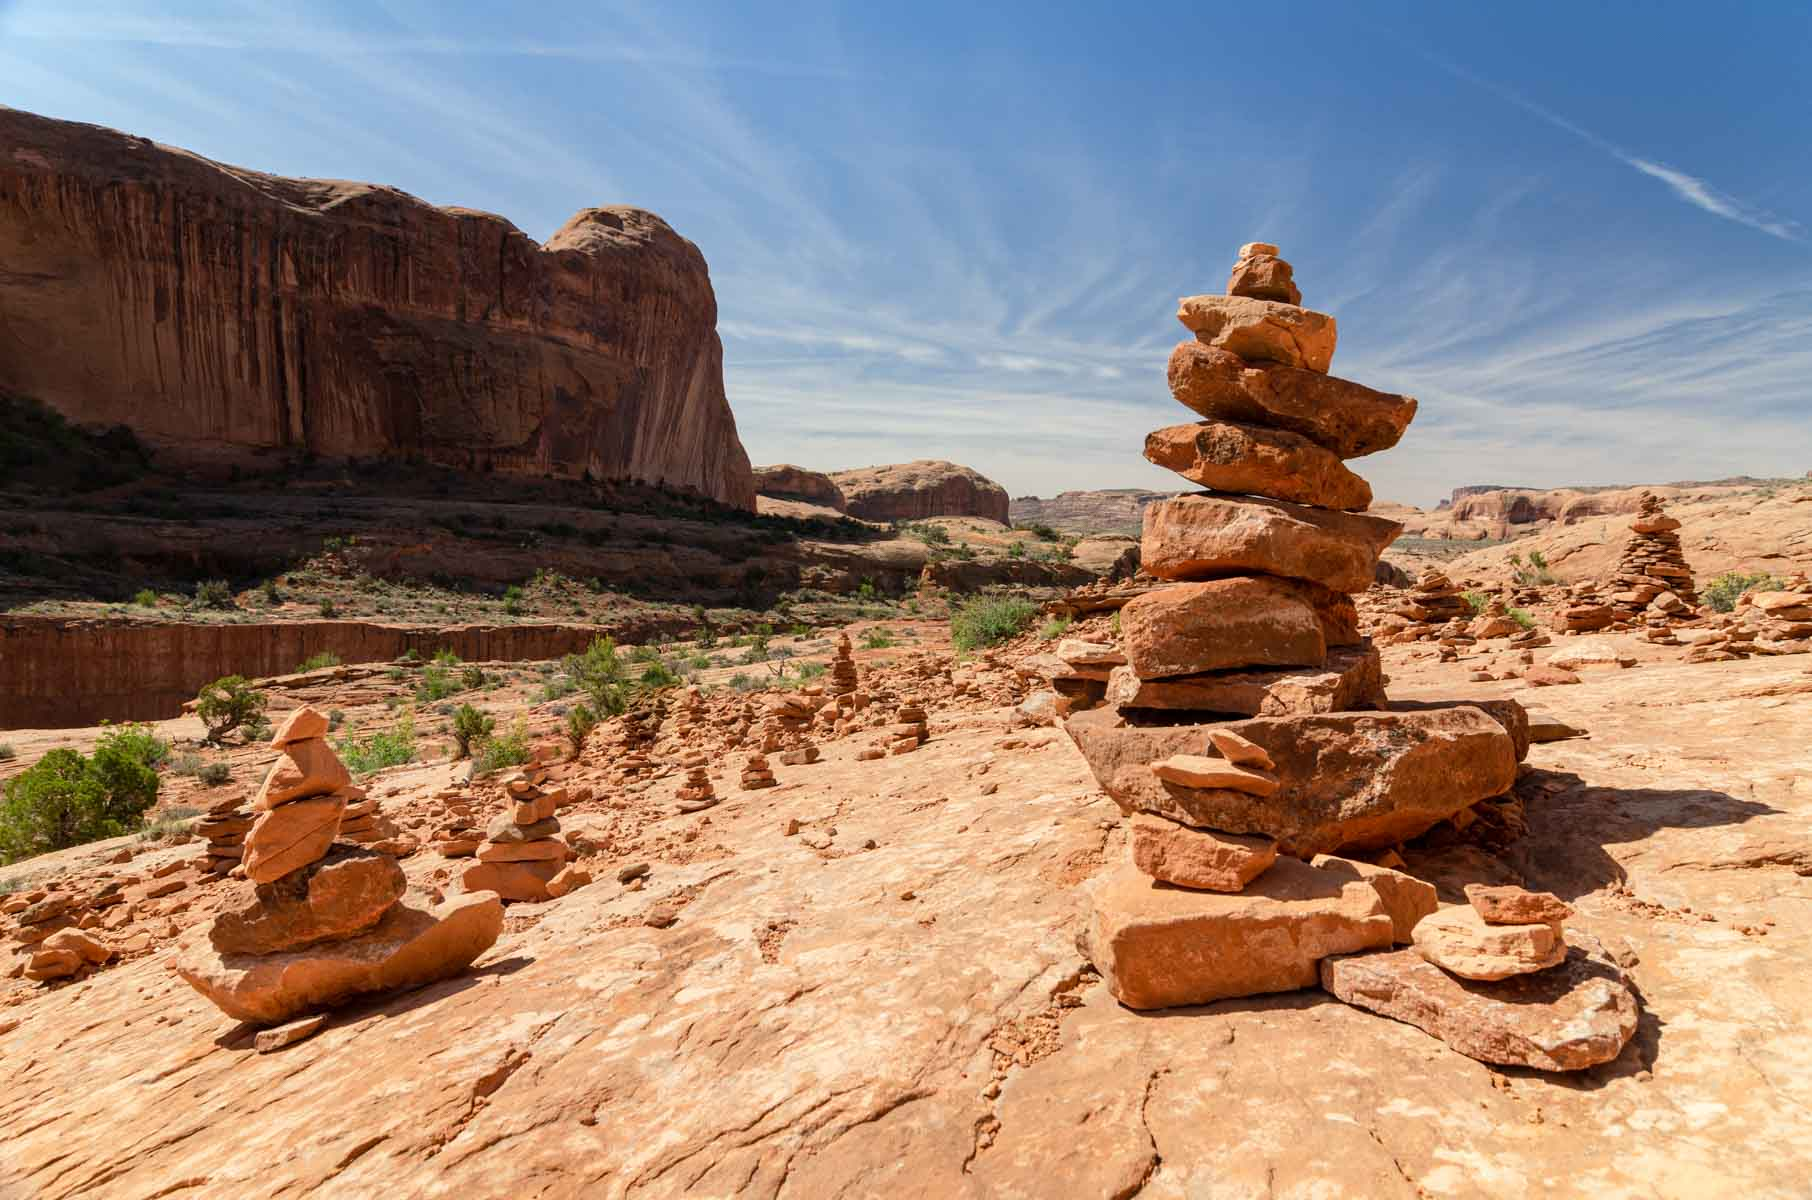 A field of balancing rocks at Arches National Park